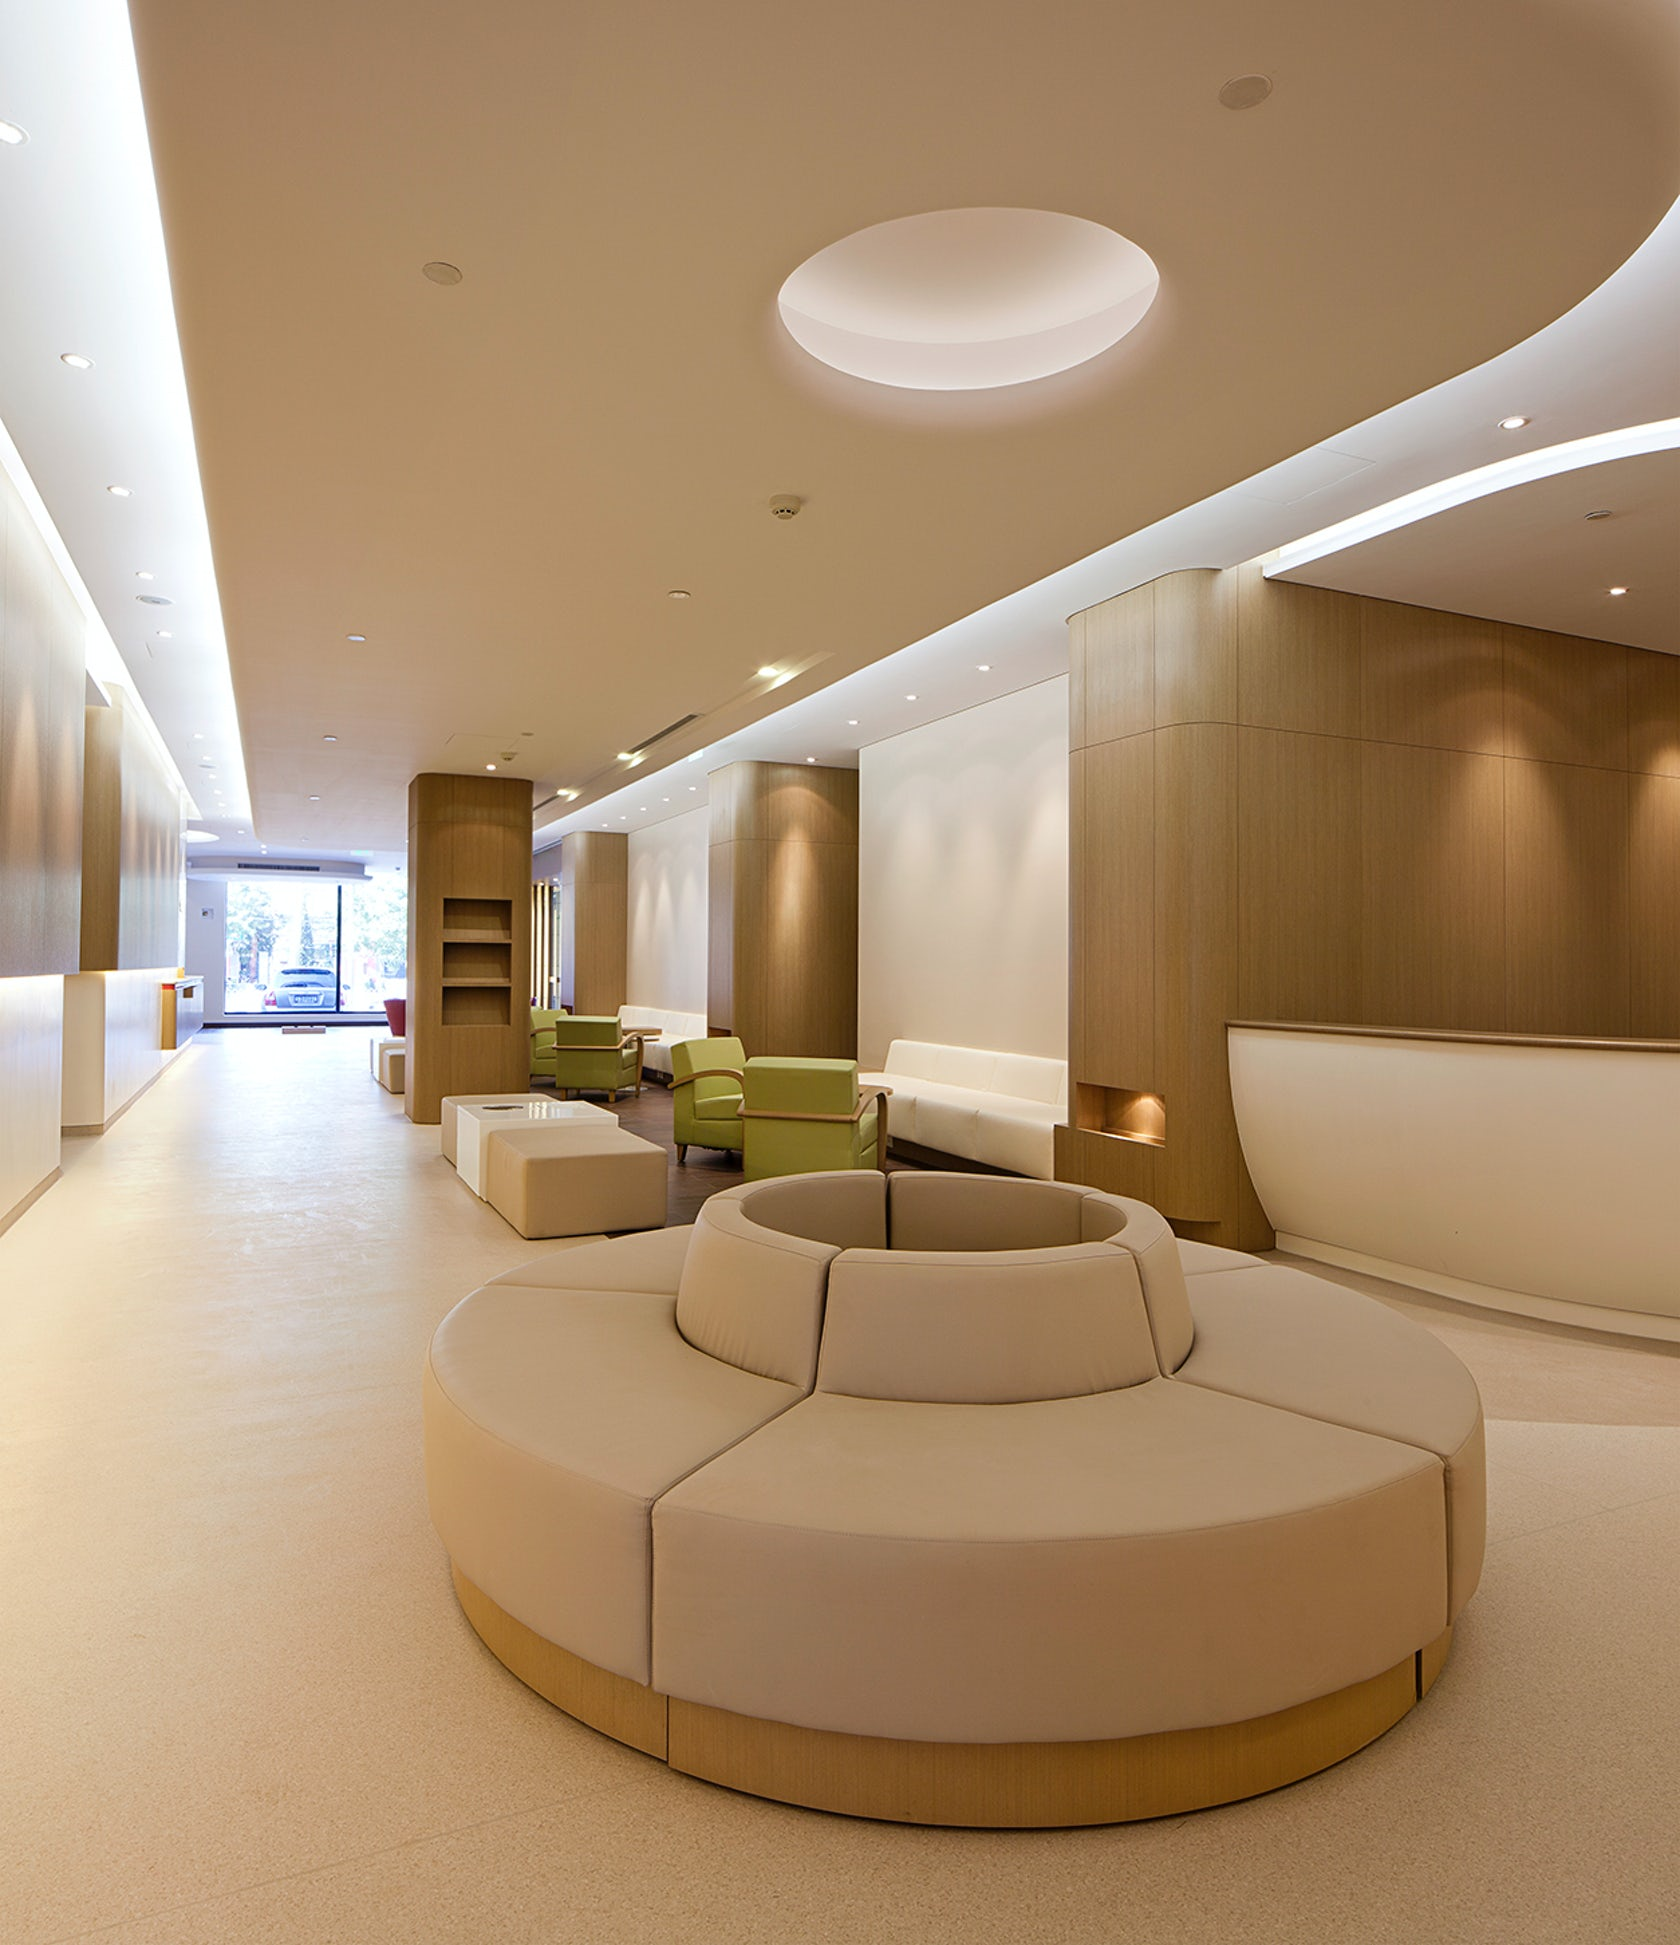 American-Sino Hospital, Audong Clinic - Architizer